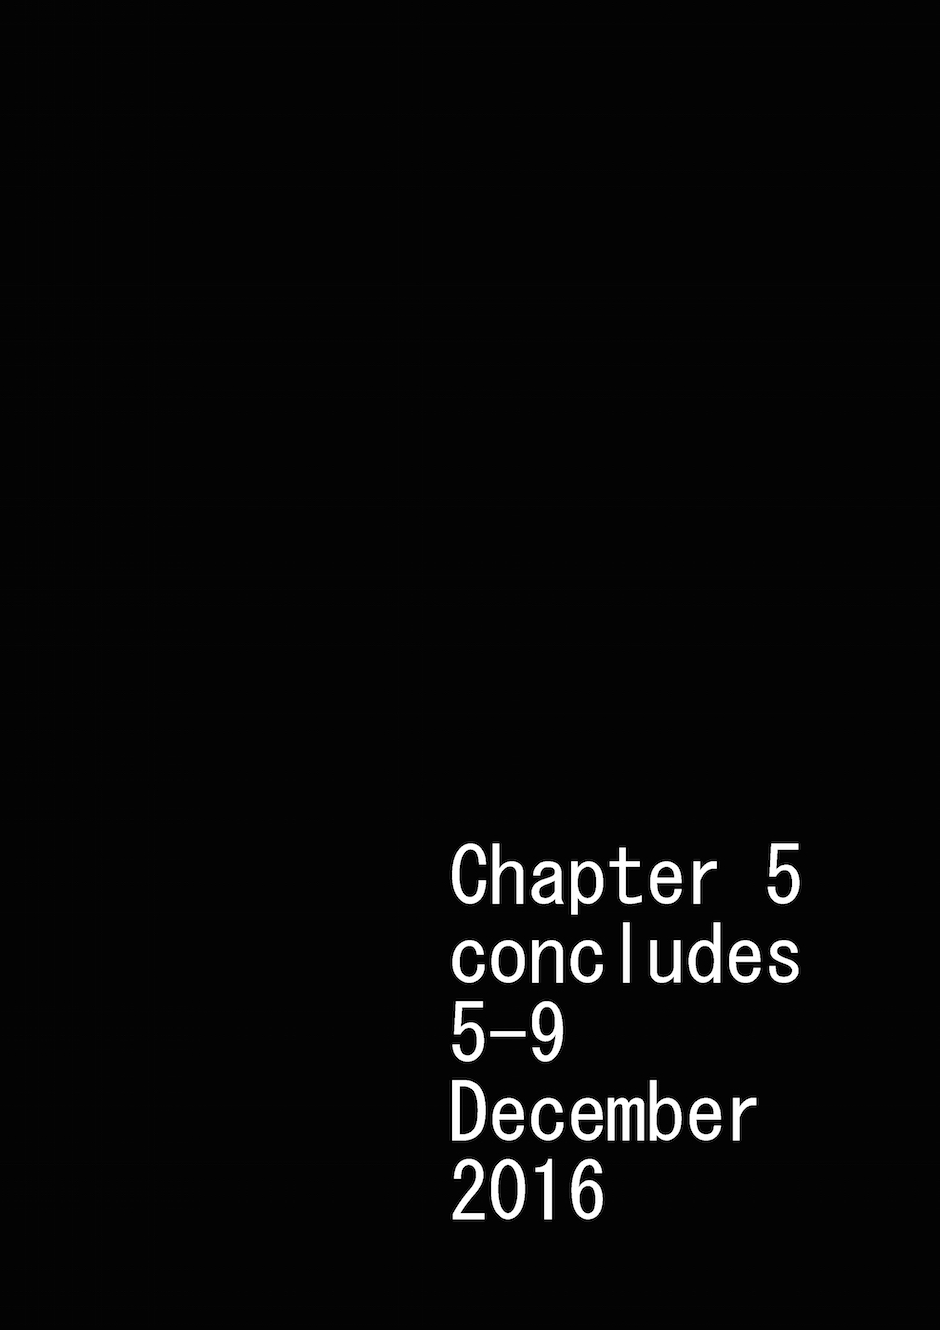 chapter-5-continues-20